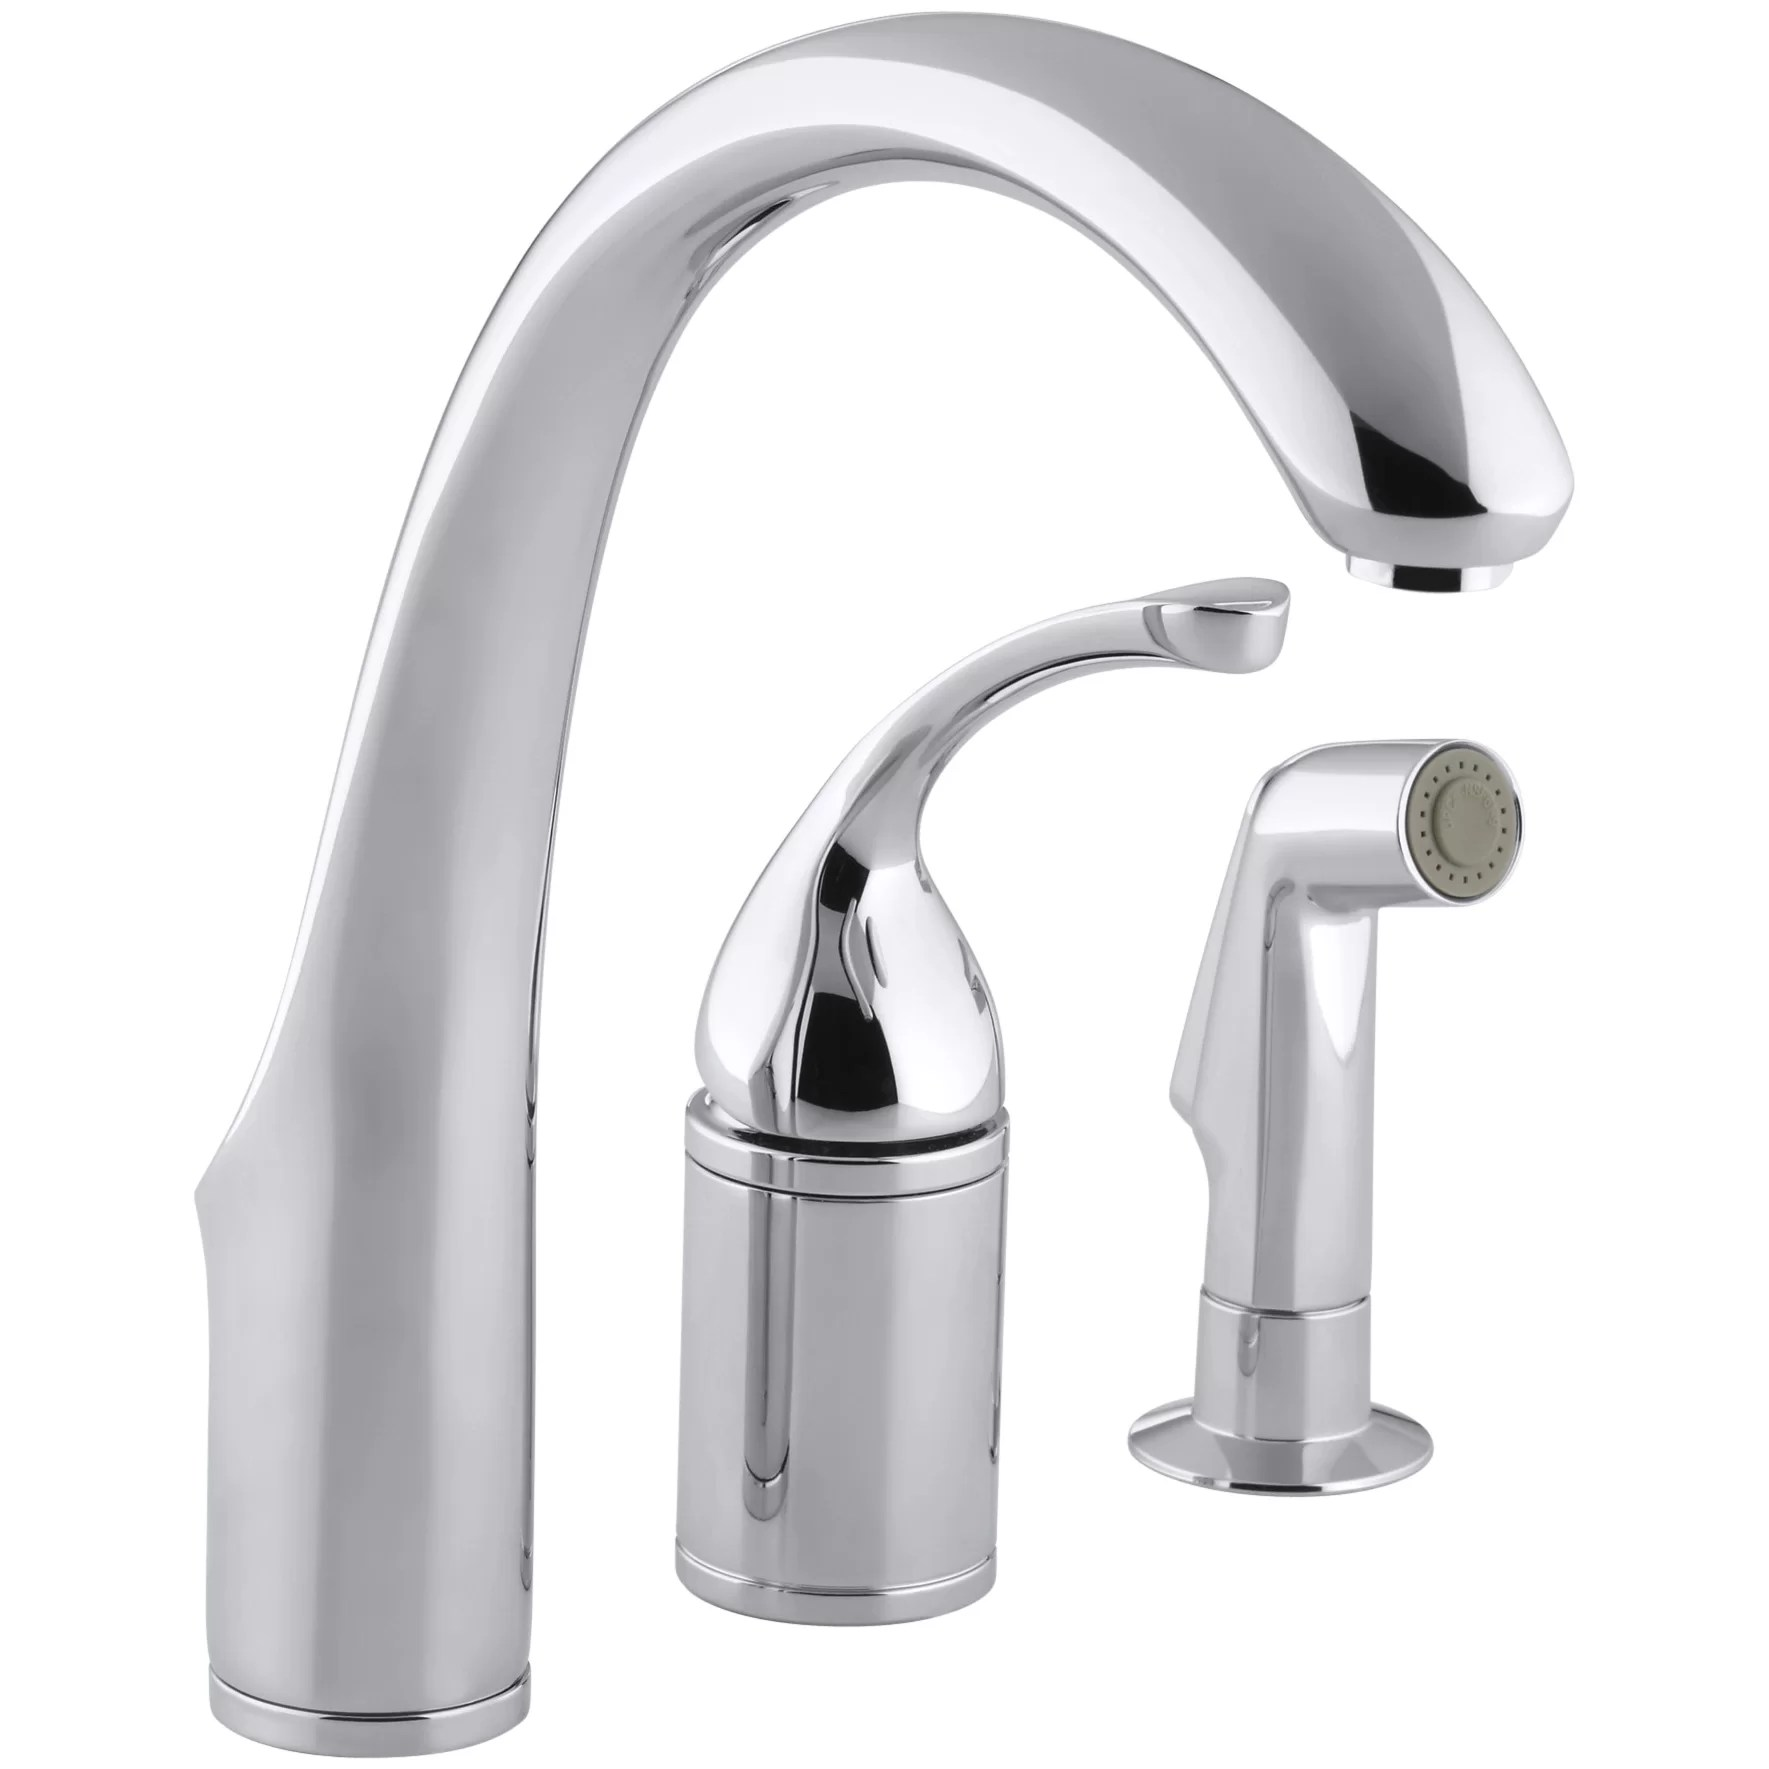 Kohler Fort%2525C3%2525A9 3 Hole Remote Valve Kitchen Sink Faucet with 9 Spout with Matching Finish Sidespray K 10430